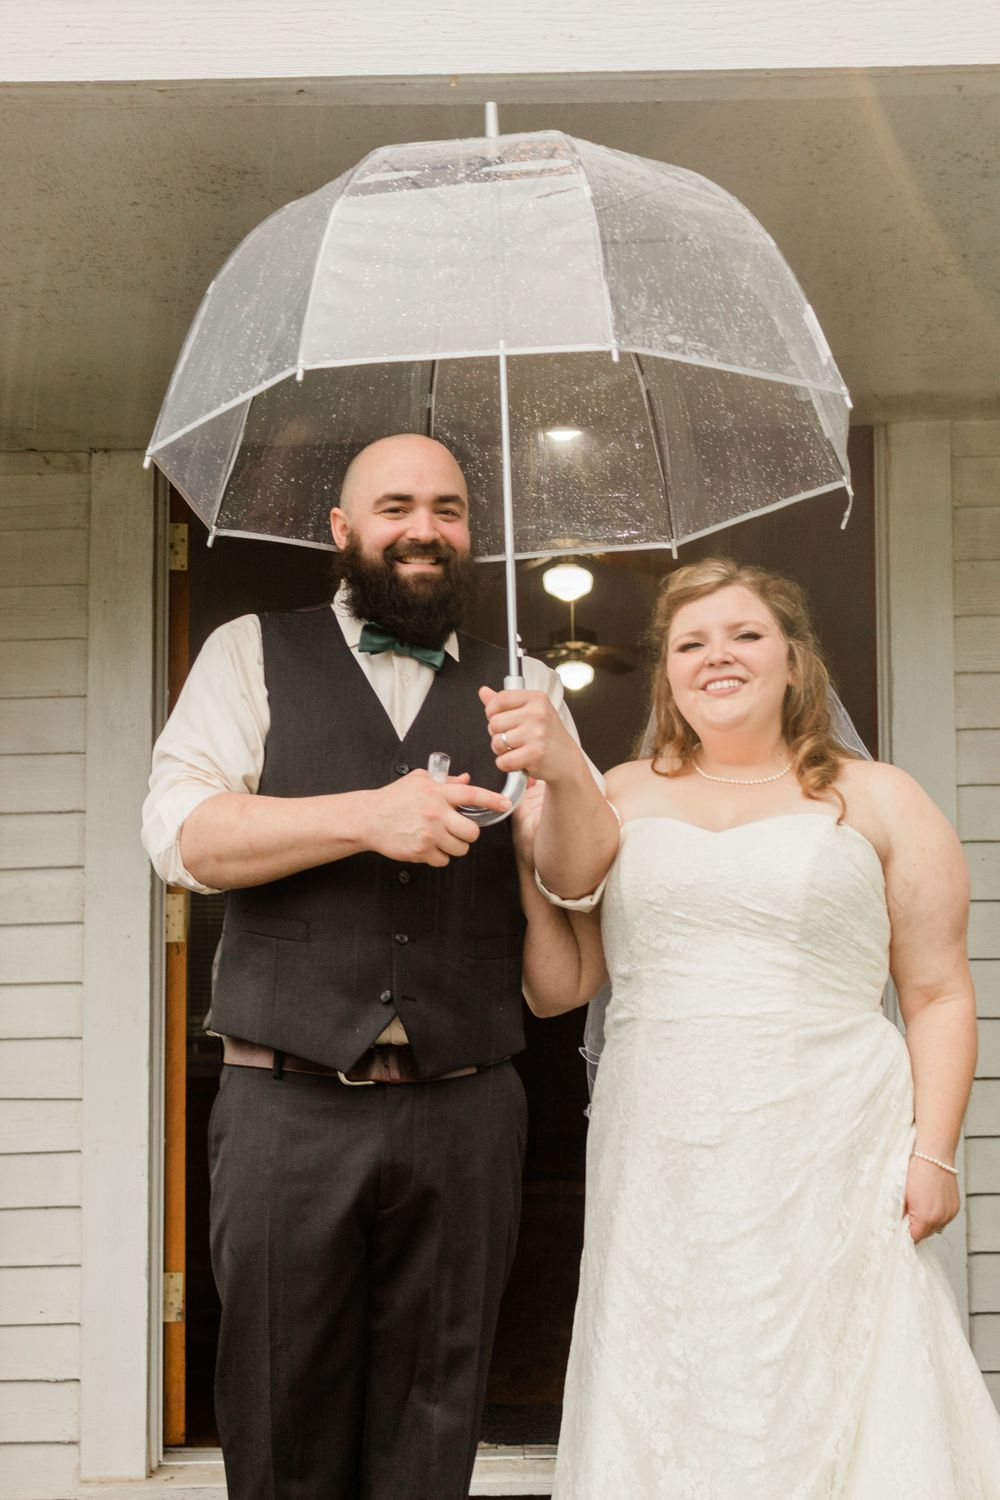 Rainy wedding day portraits with clear umbrella Bowdon, GA 2020 Wedding